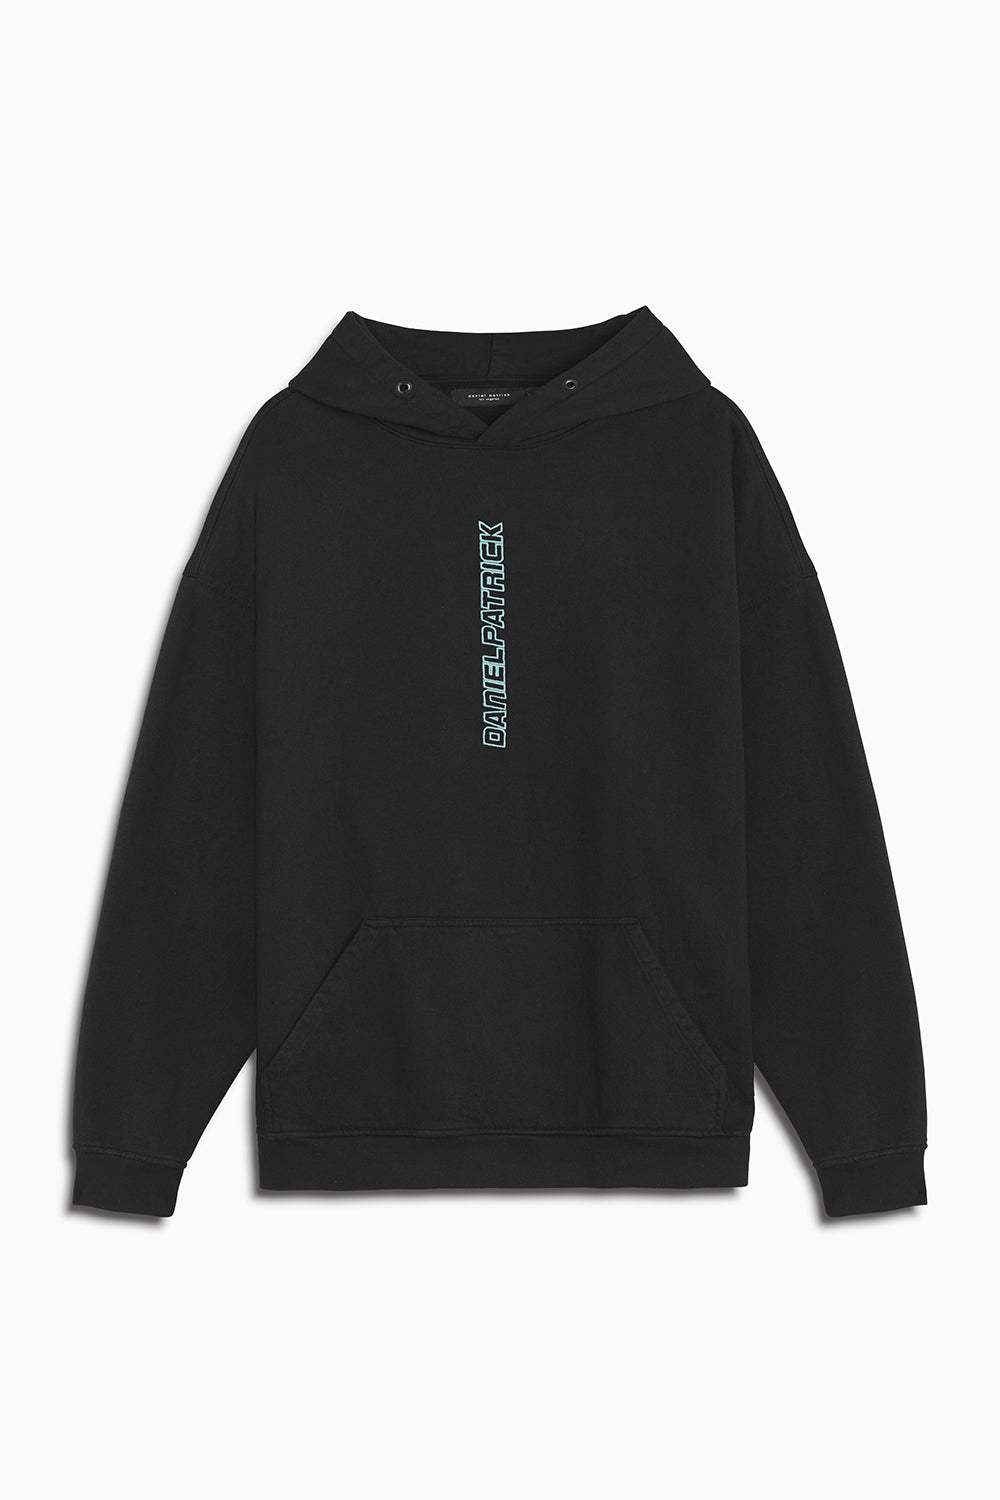 vertical logo hoodie in black/sea foam by daniel patrick